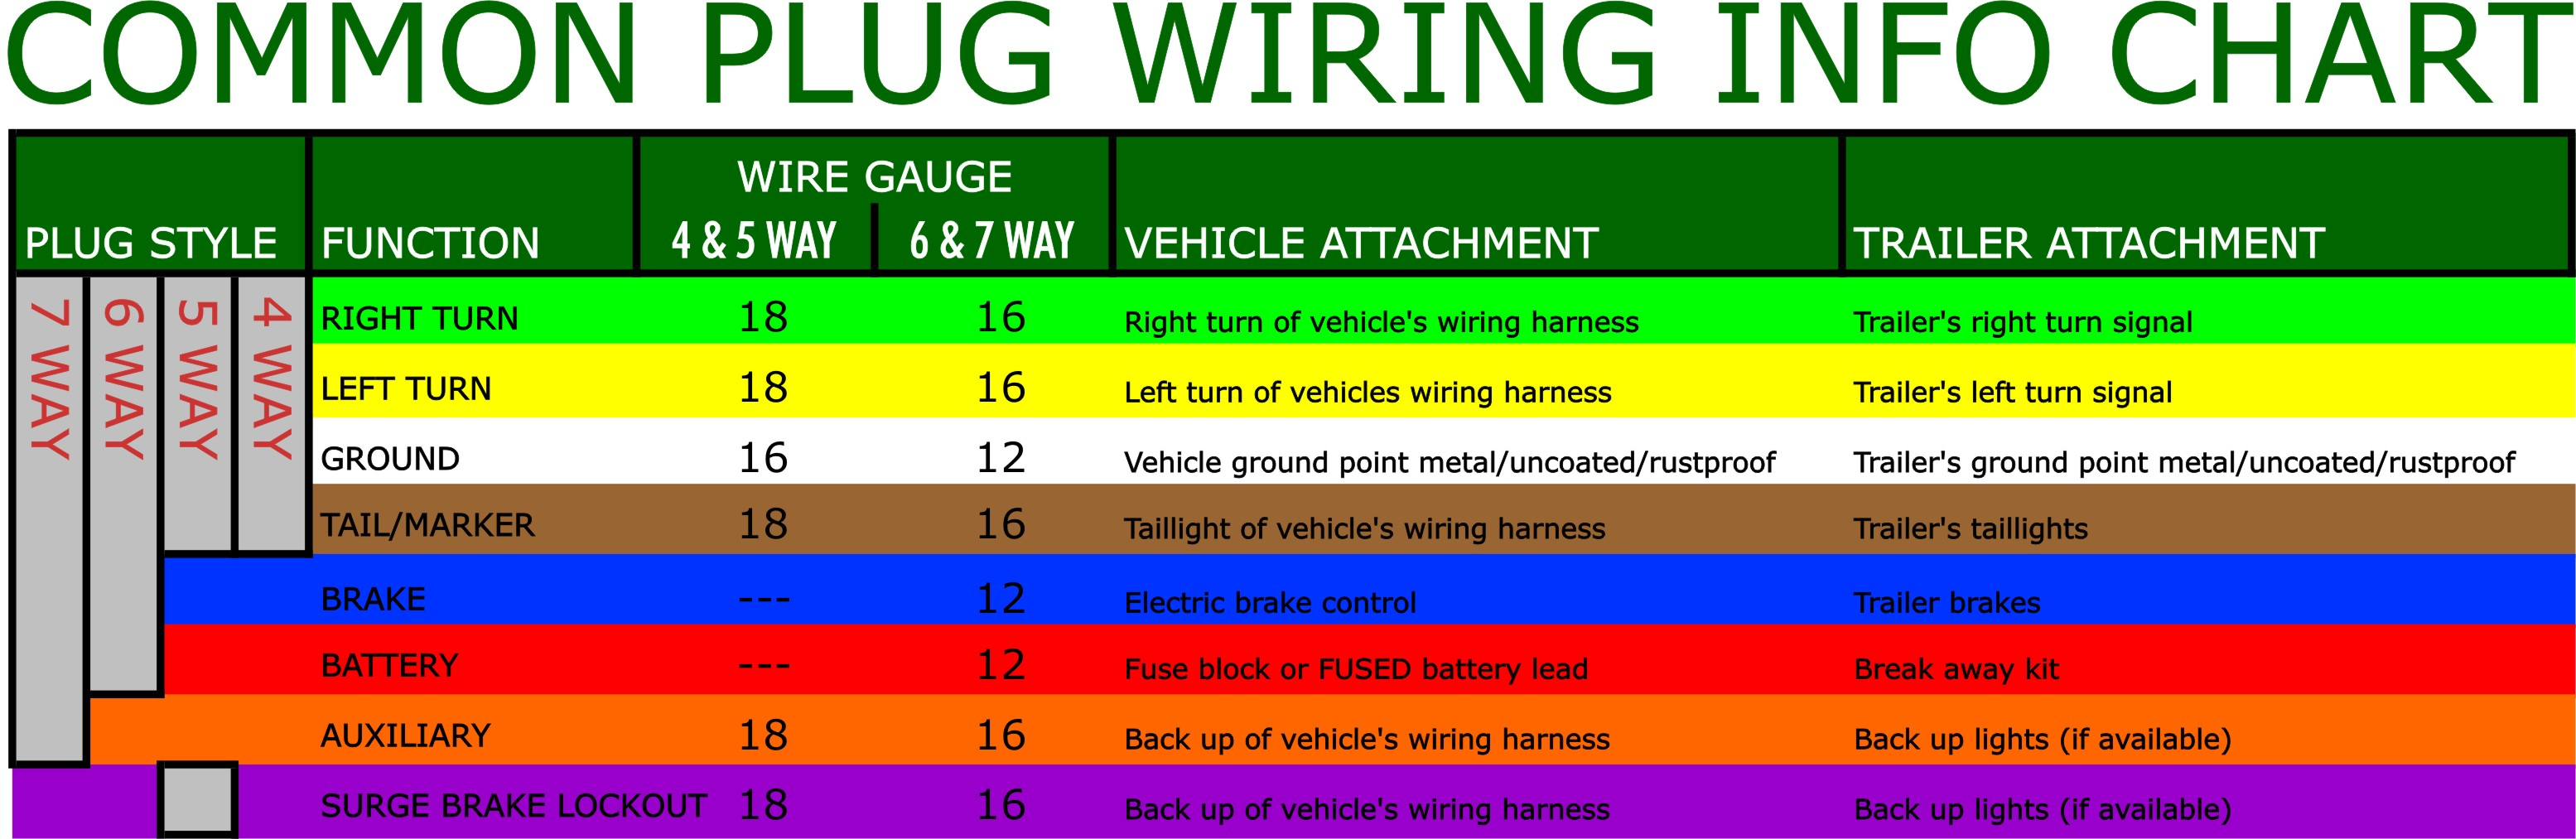 What Are The Most Common Trailer Plugs? - Trailer Lights Wiring Diagram 5 Way